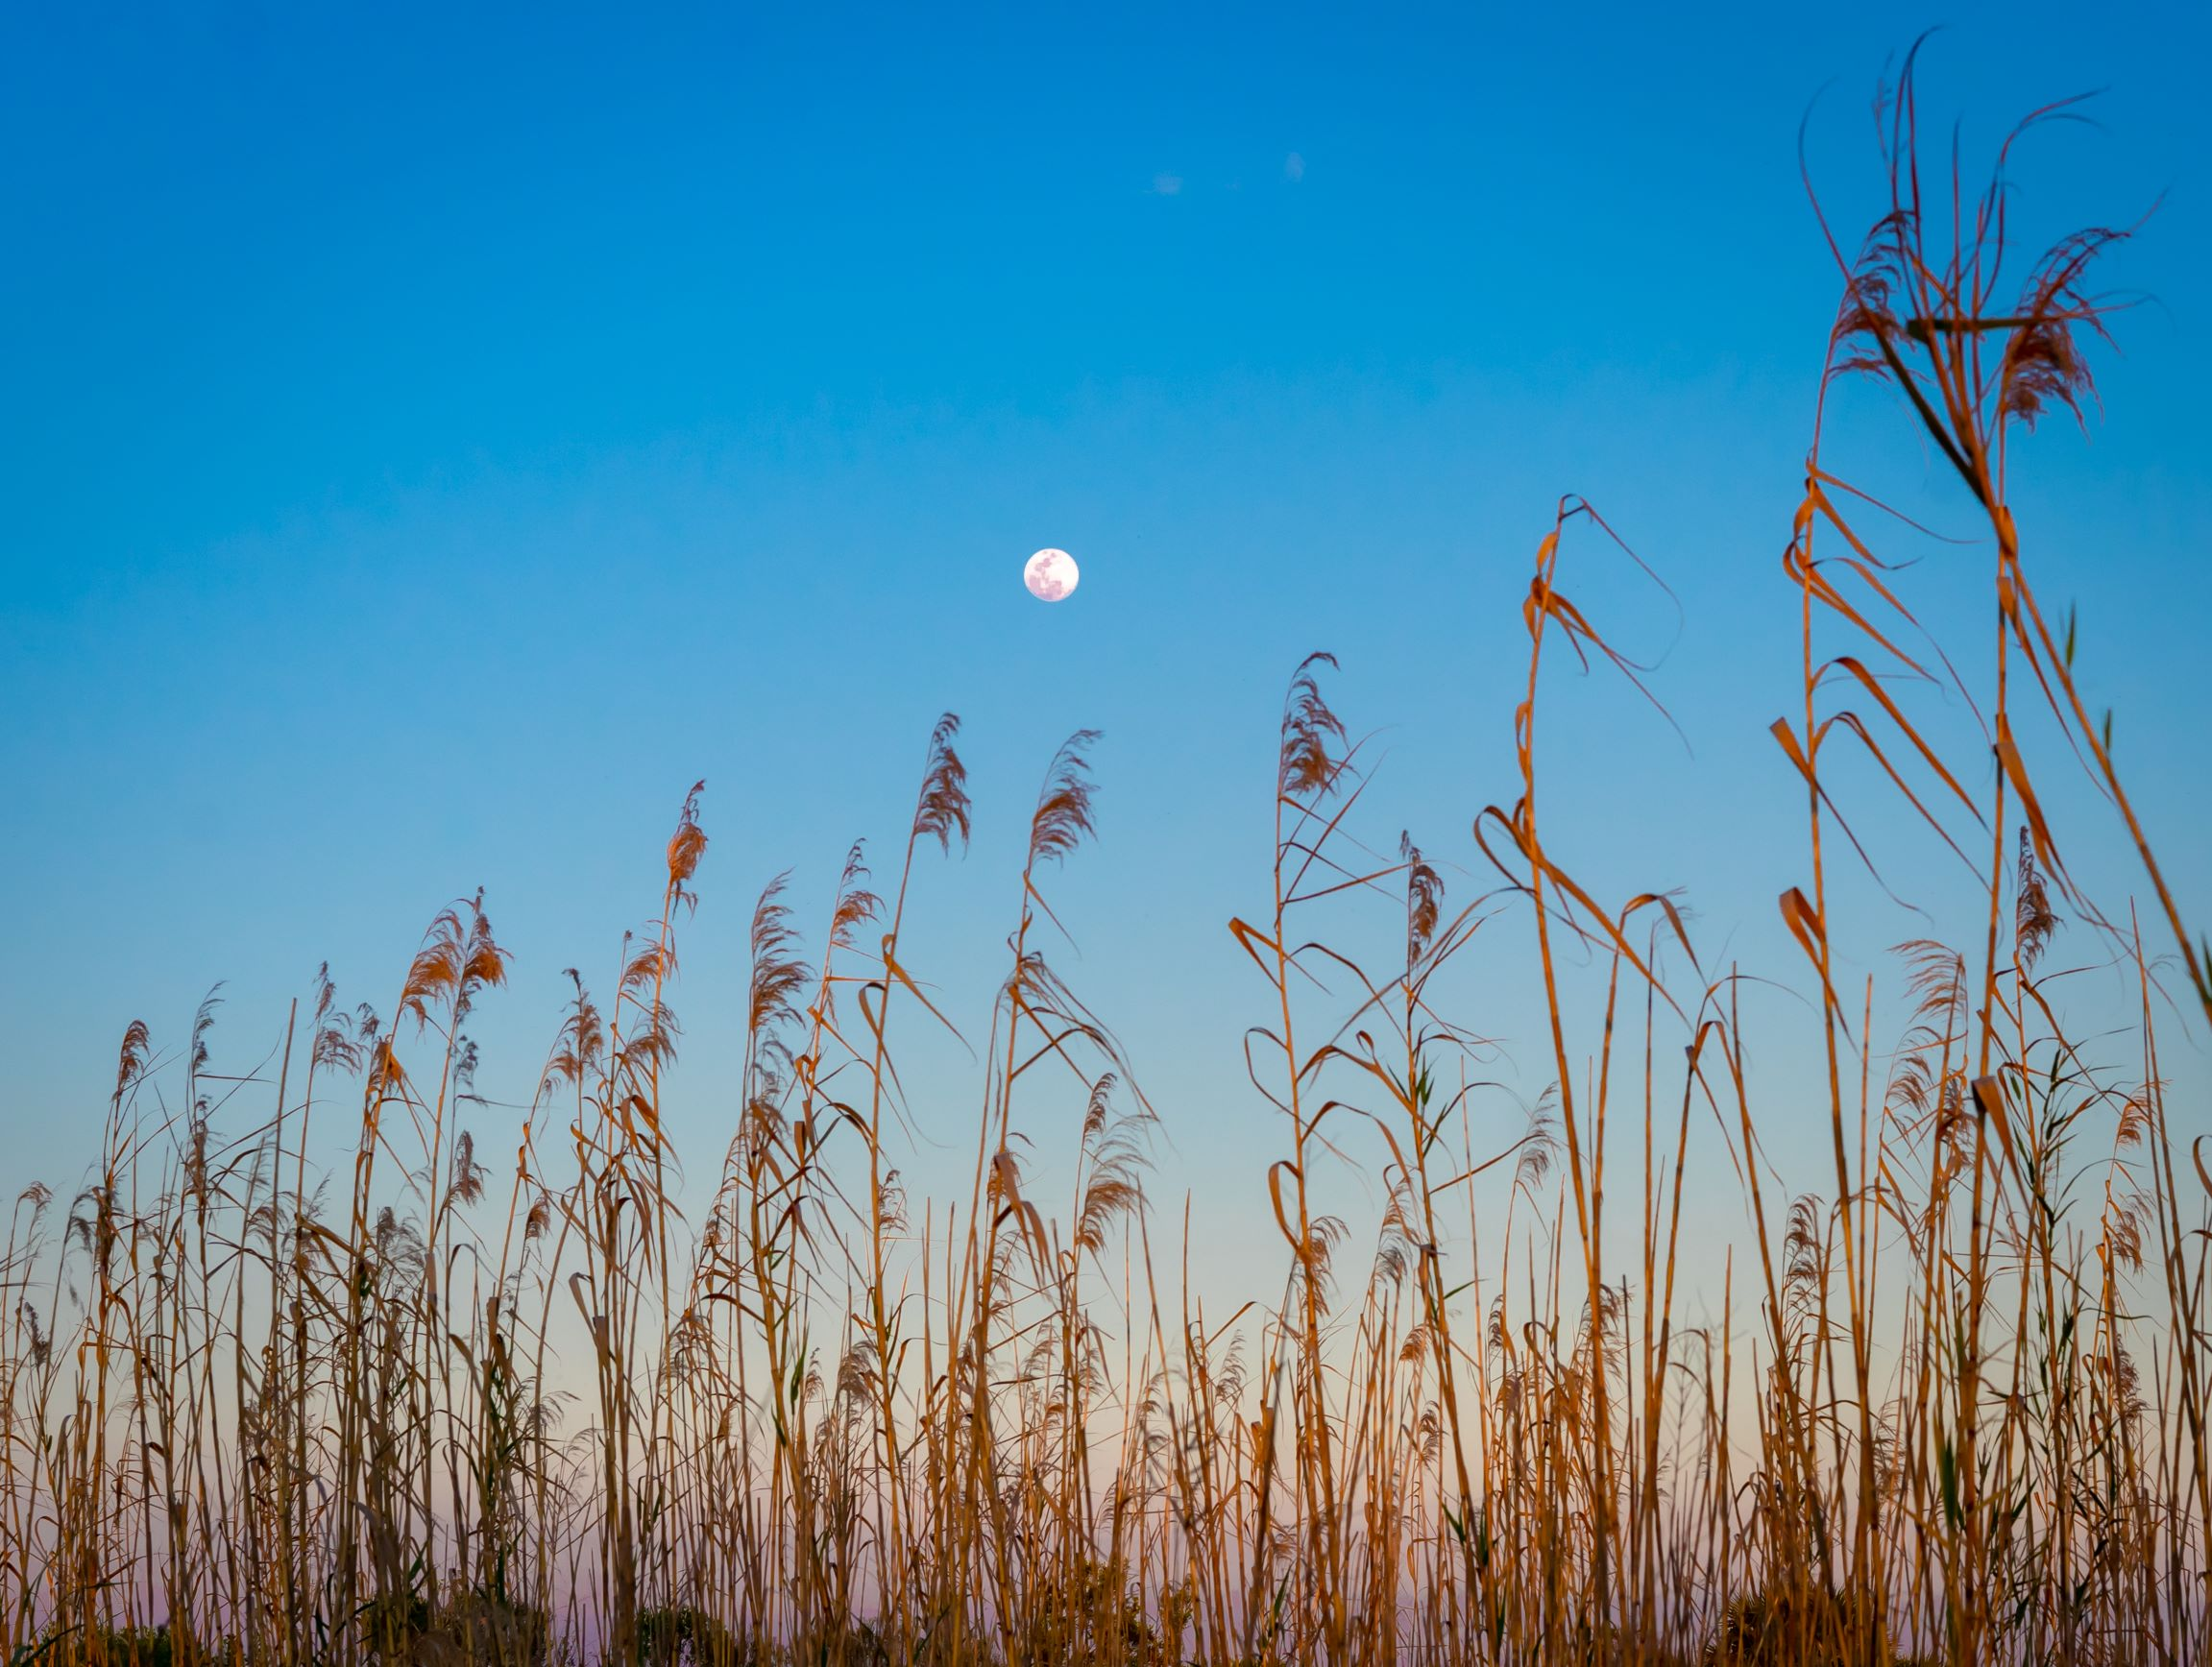 Spring moon, blue sky, golden sea grass swaying.